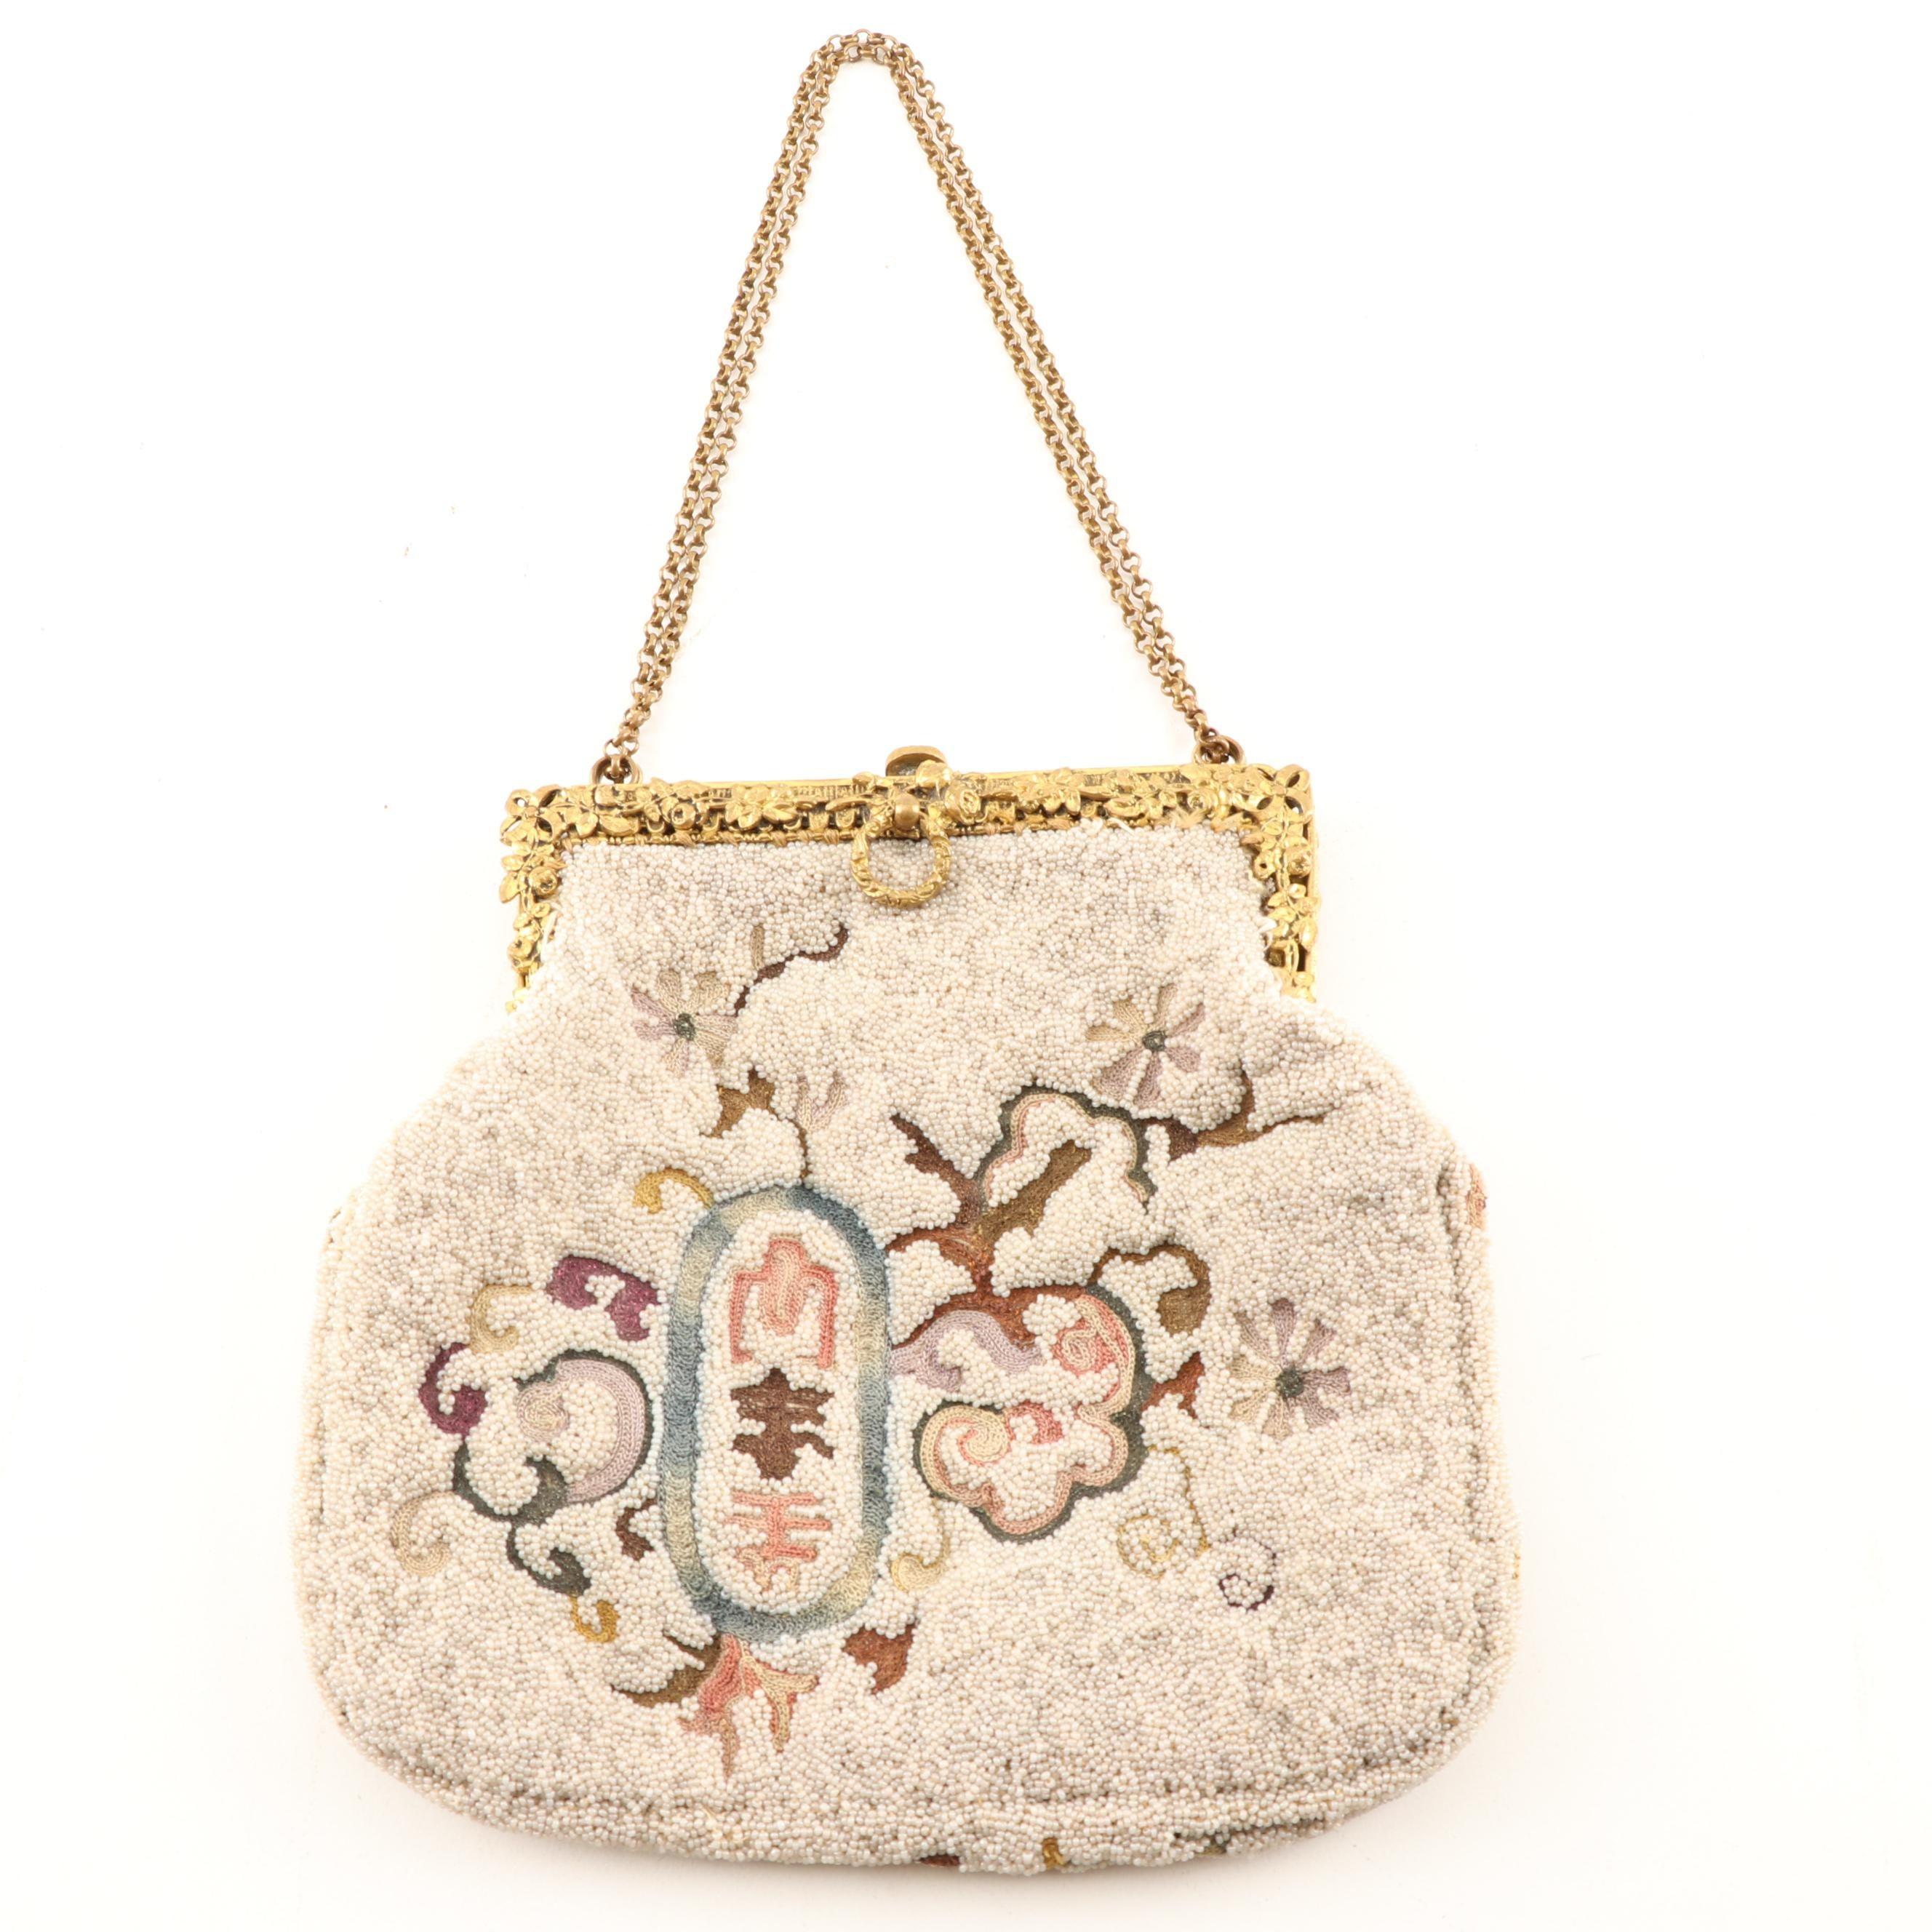 Beaded and Embroidered Purse, Circa 1930